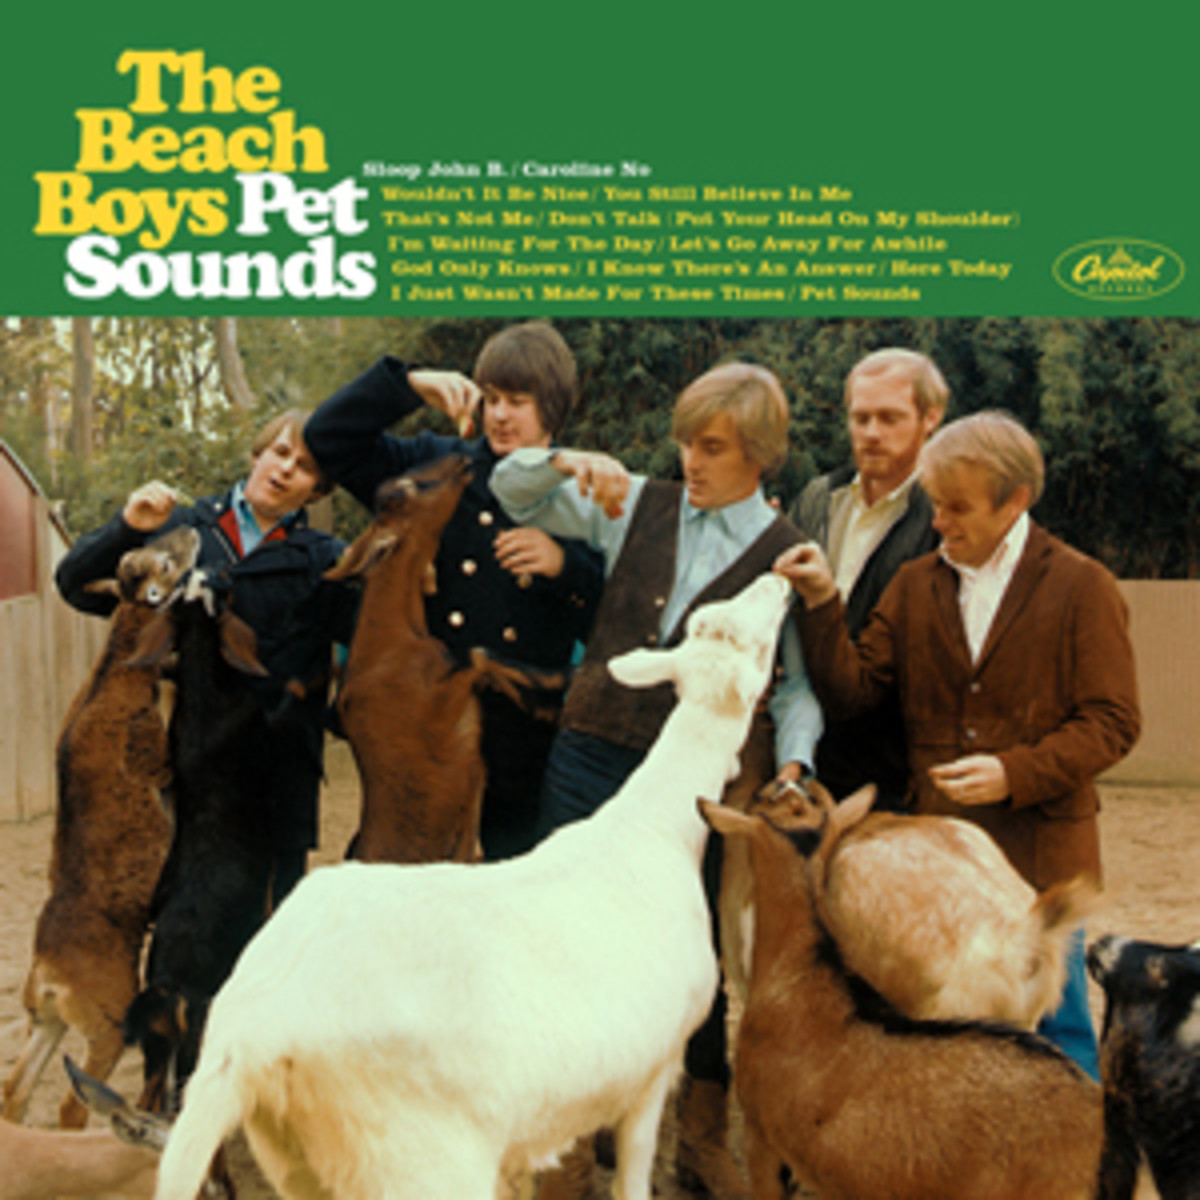 One of the most groundbreaking albums of its time, Pet Sounds contained a mixture of many experimental sounds and harmonies in its songs.